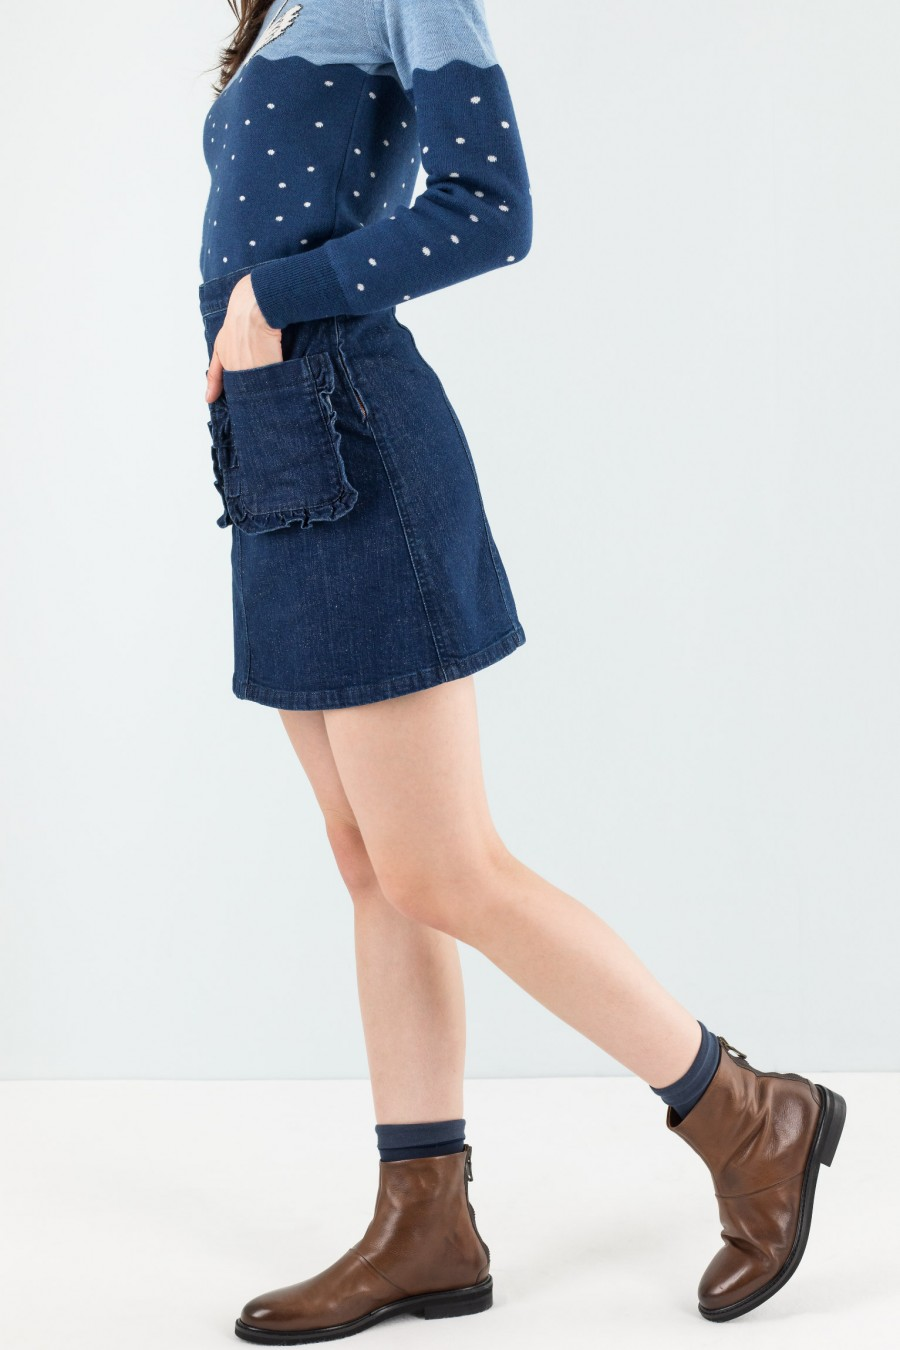 Denim Lazzari skirt